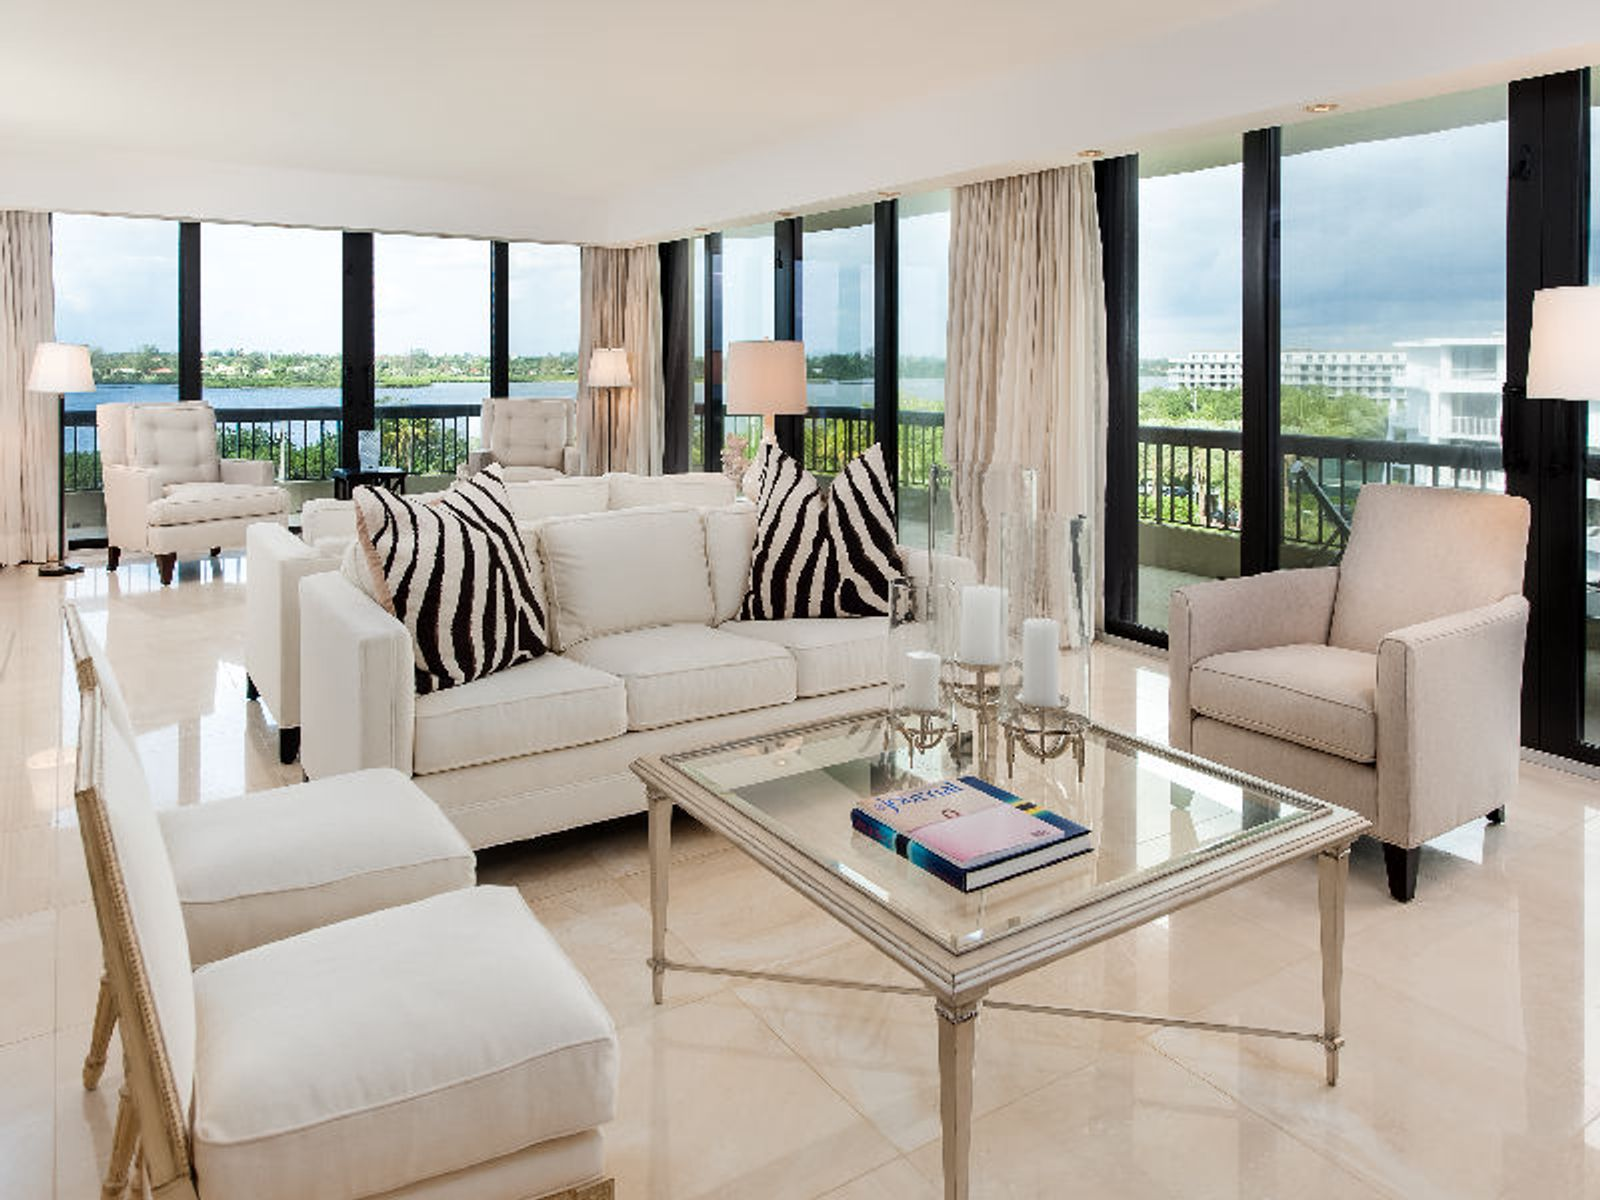 Sunrise to Sunset, Palm Beach FL Condominium - Palm Beach Real Estate